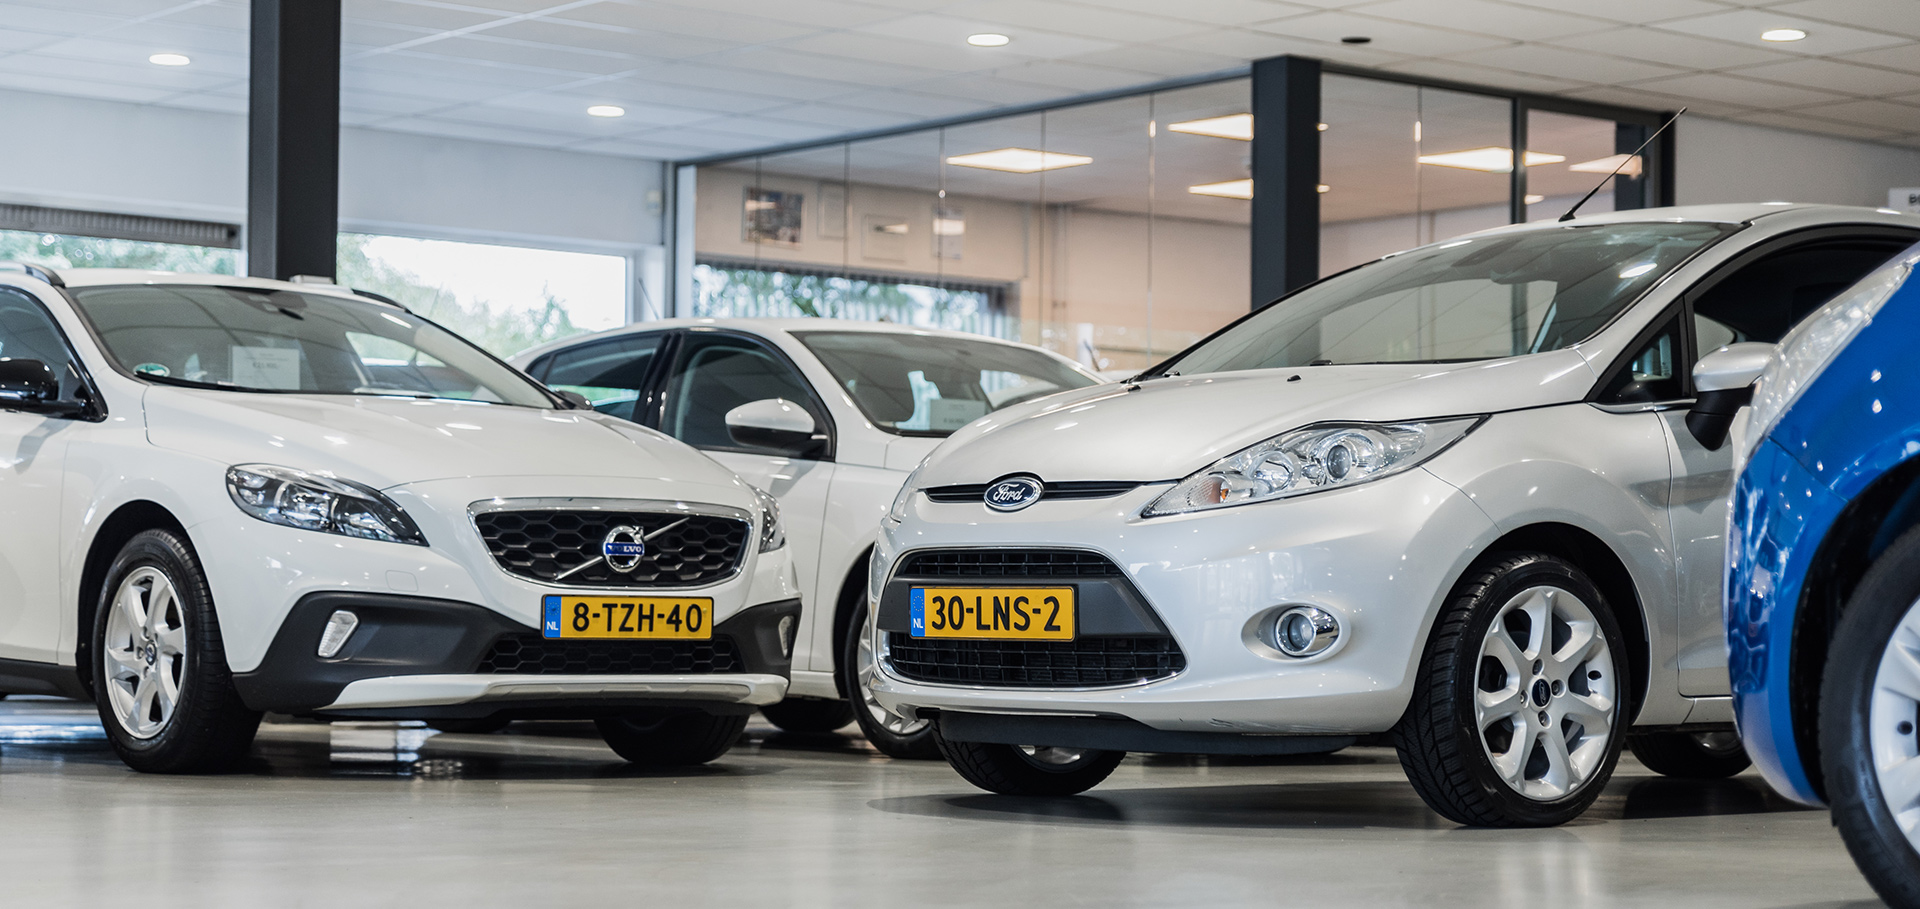 Occasions Autobedrijf Ron Plomp Purmerend